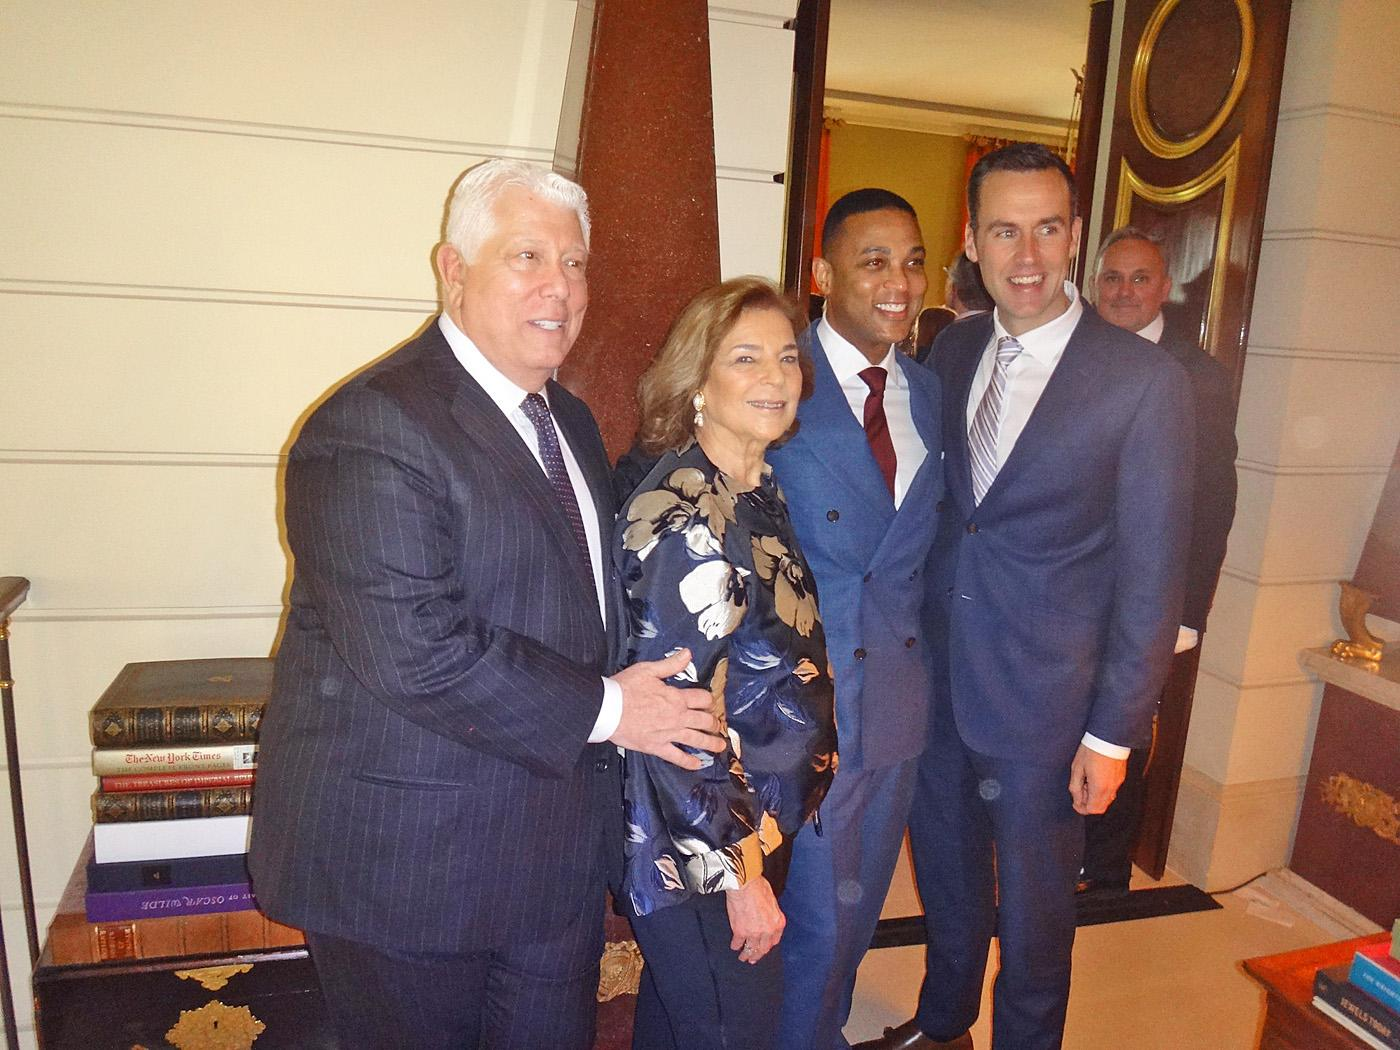 Dennis Basso, Marion Waxman, Don Lemon & Tim Malone All photos Laurel Marcus